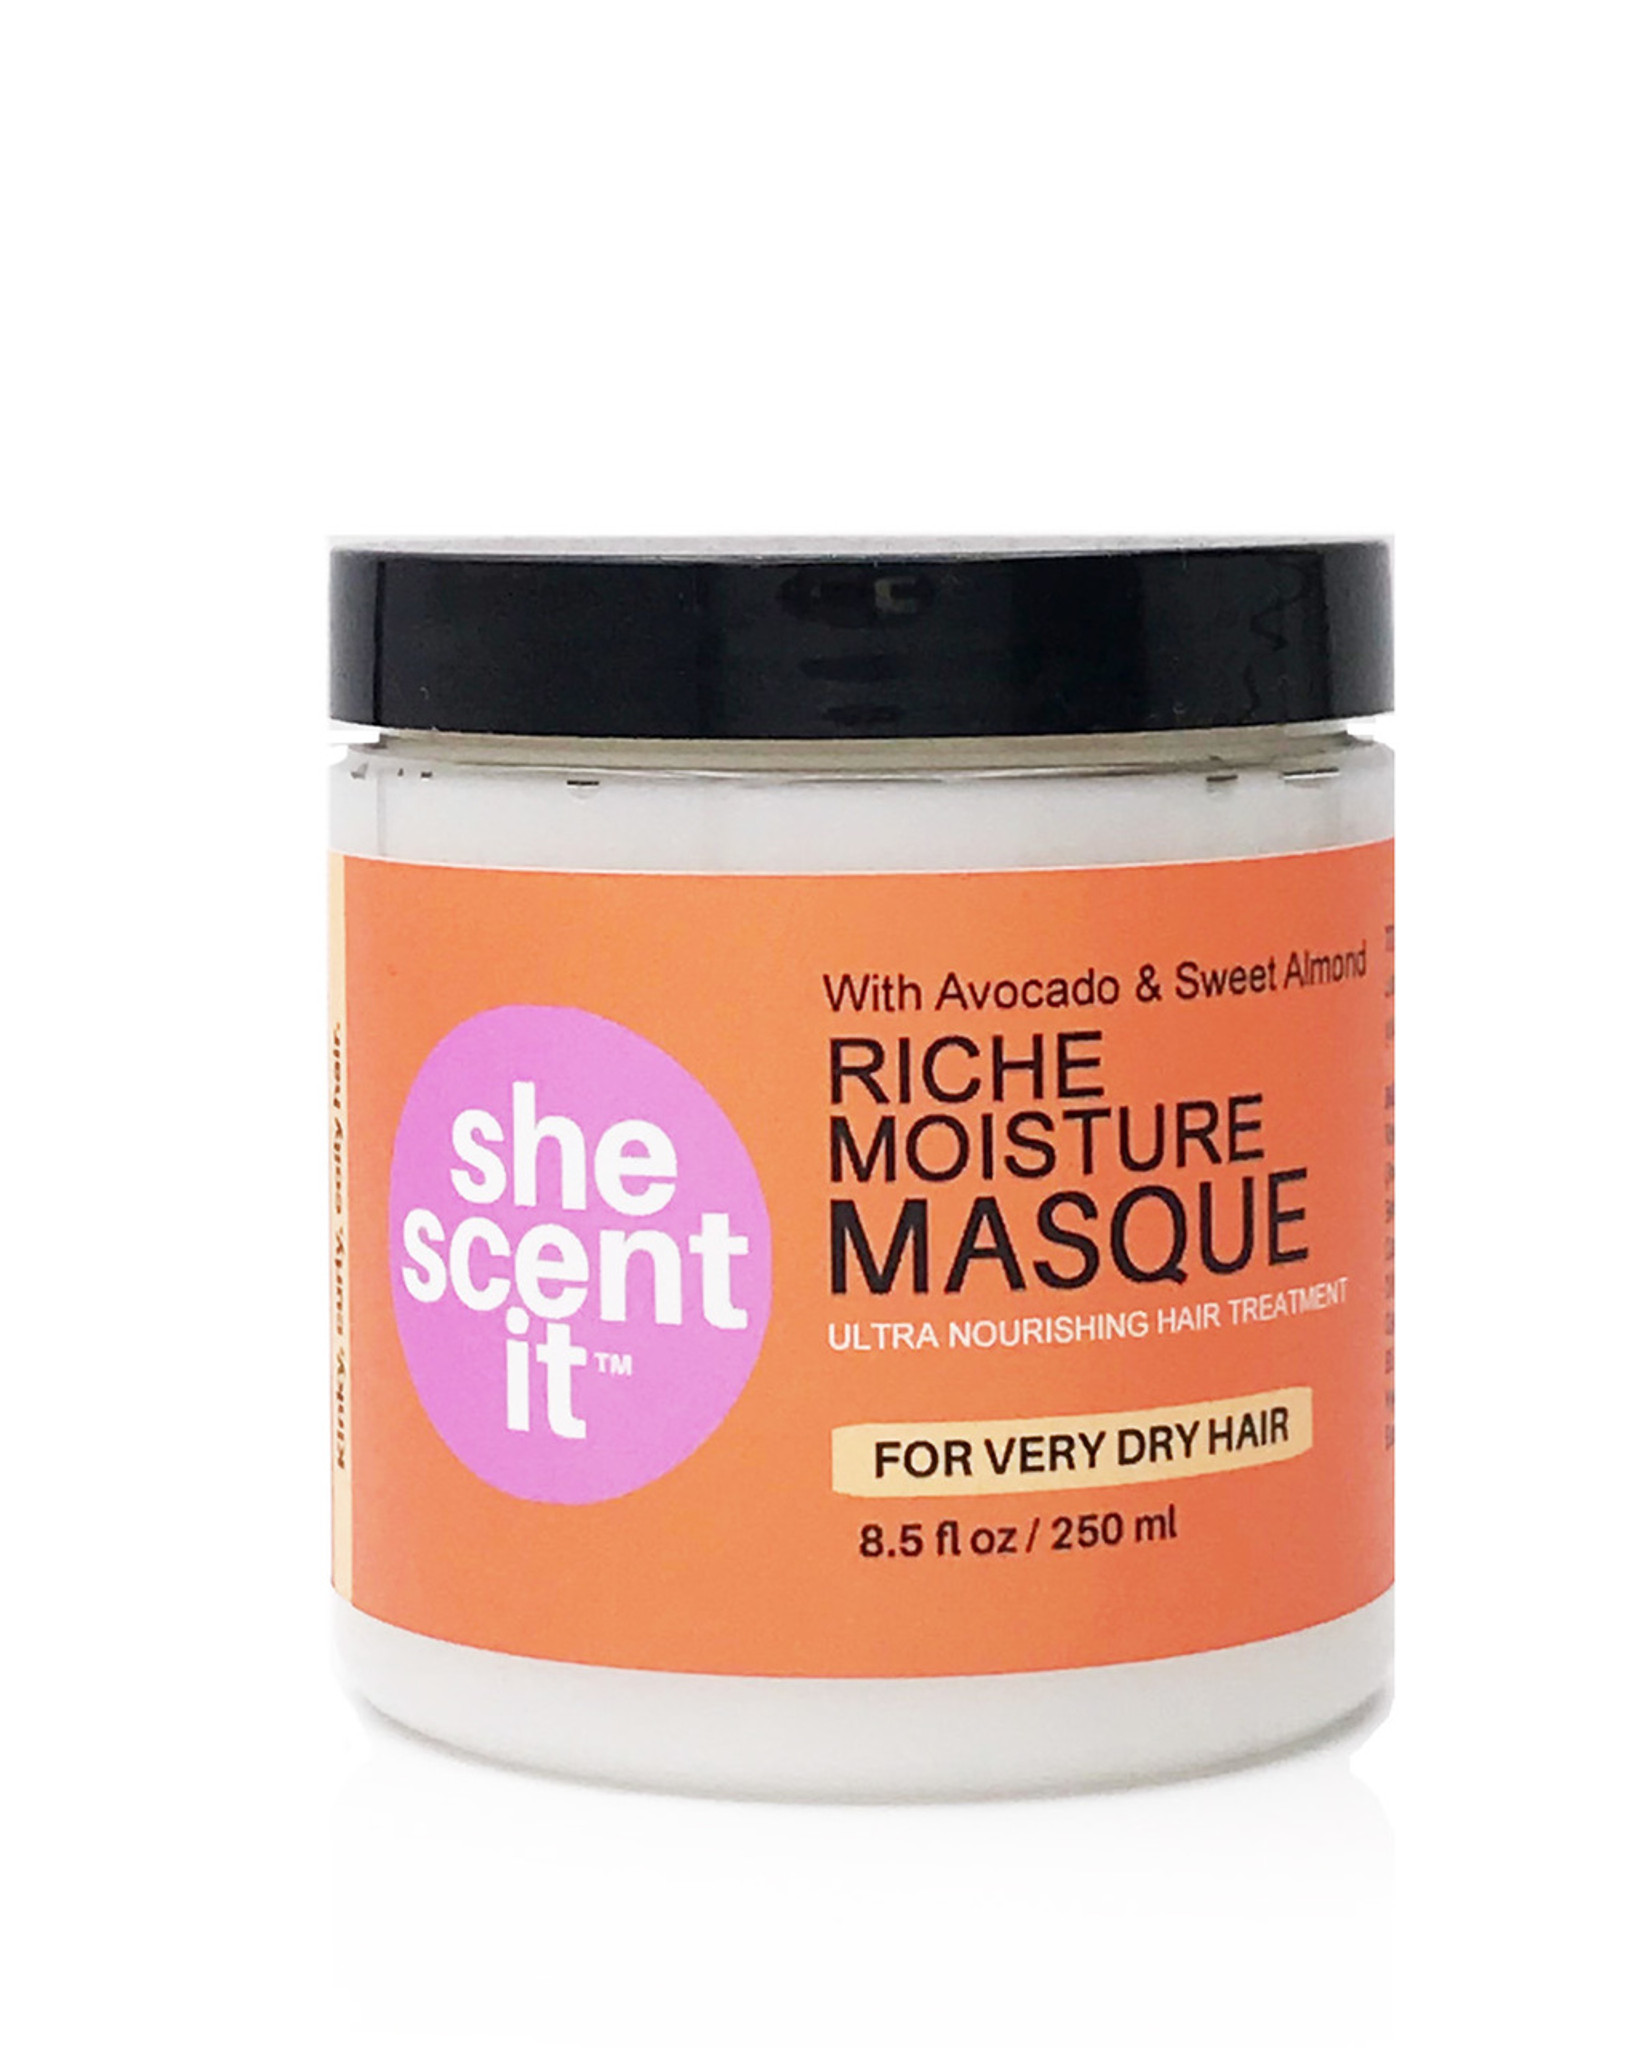 RICHE MOISTURE MASQUE